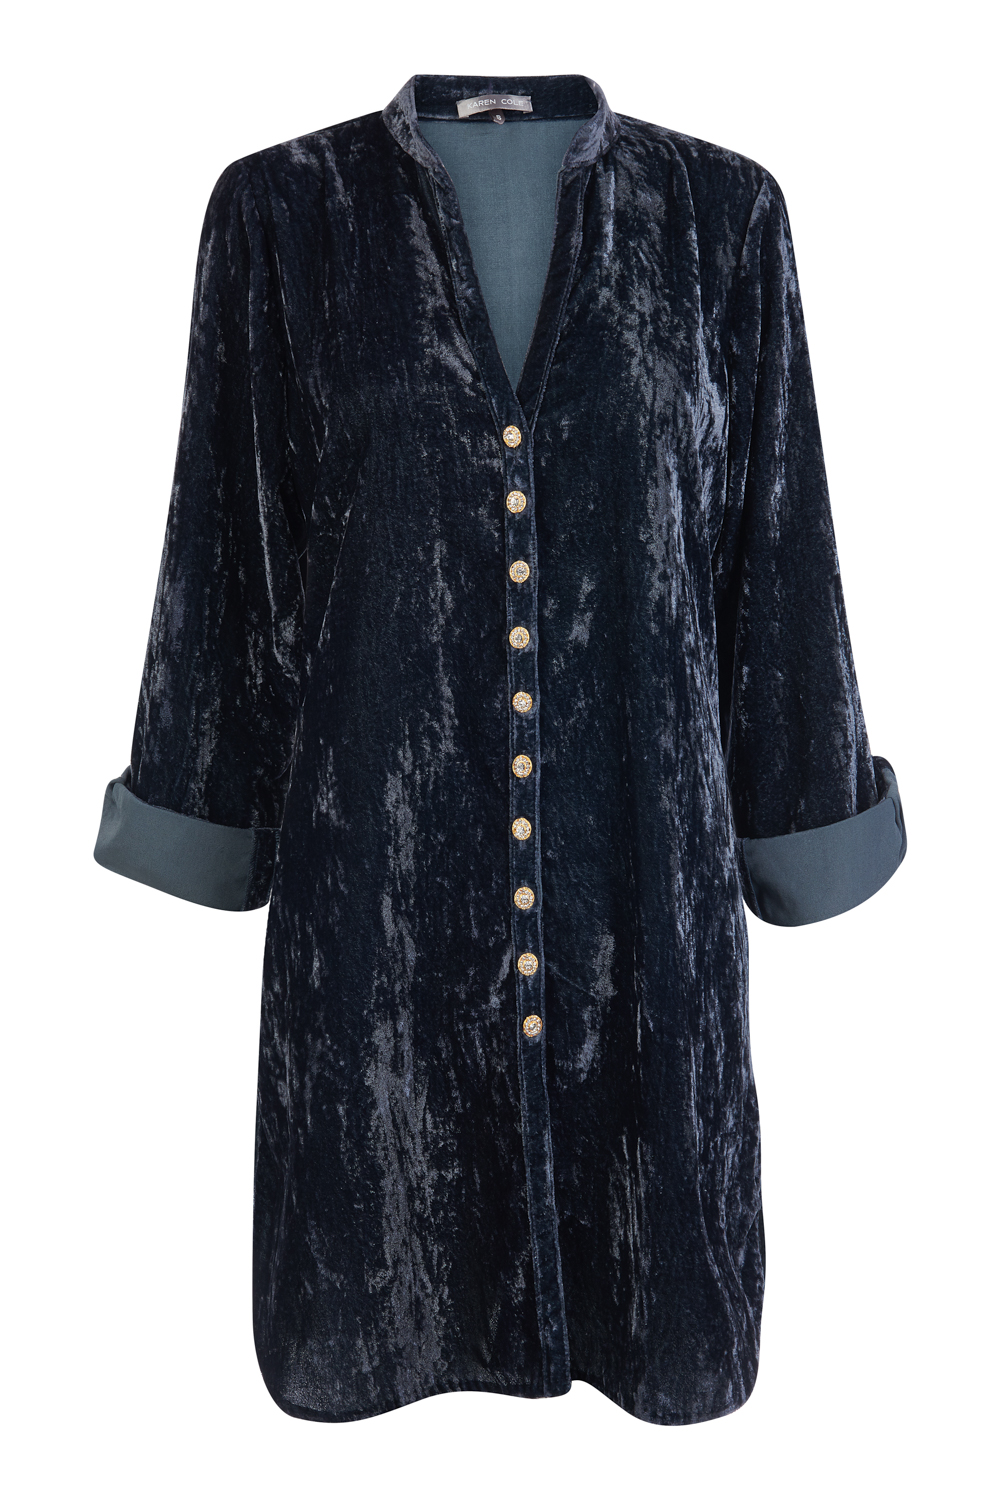 At Last Louise - Diamond Buttons Navy